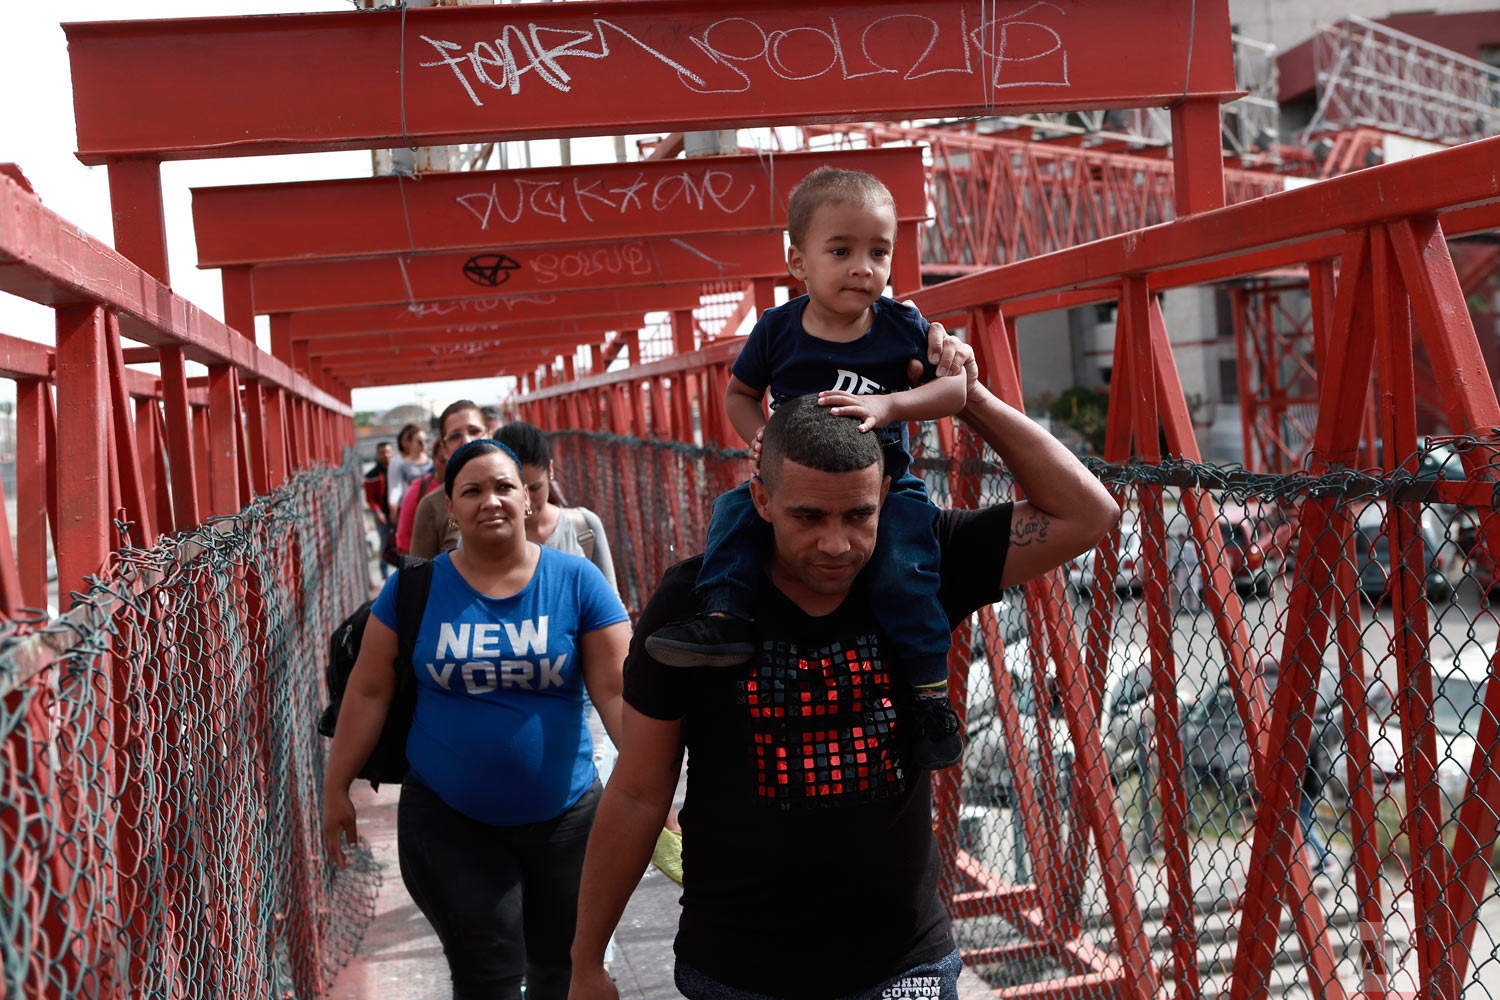 Cuban migrants are escorted by Mexican immigration officials as they cross the Paso del Norte International bridge to be processed as asylum seekers on the U.S. side of the border. (AP Photo/Christian Torres)